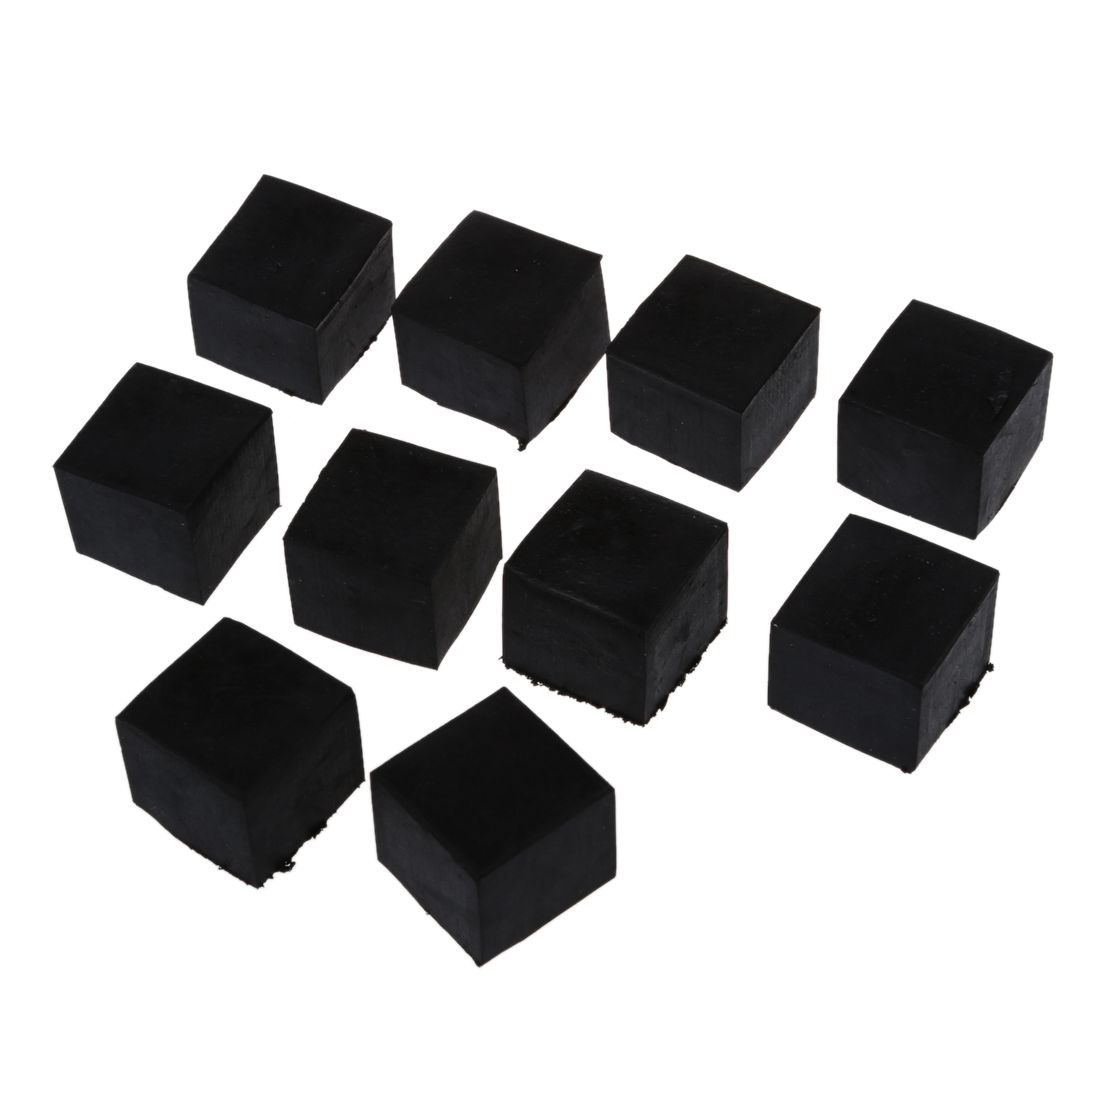 10 Pcs Black Rubber 25mm x 25mm Furniture Chair Legs Covers Protectors